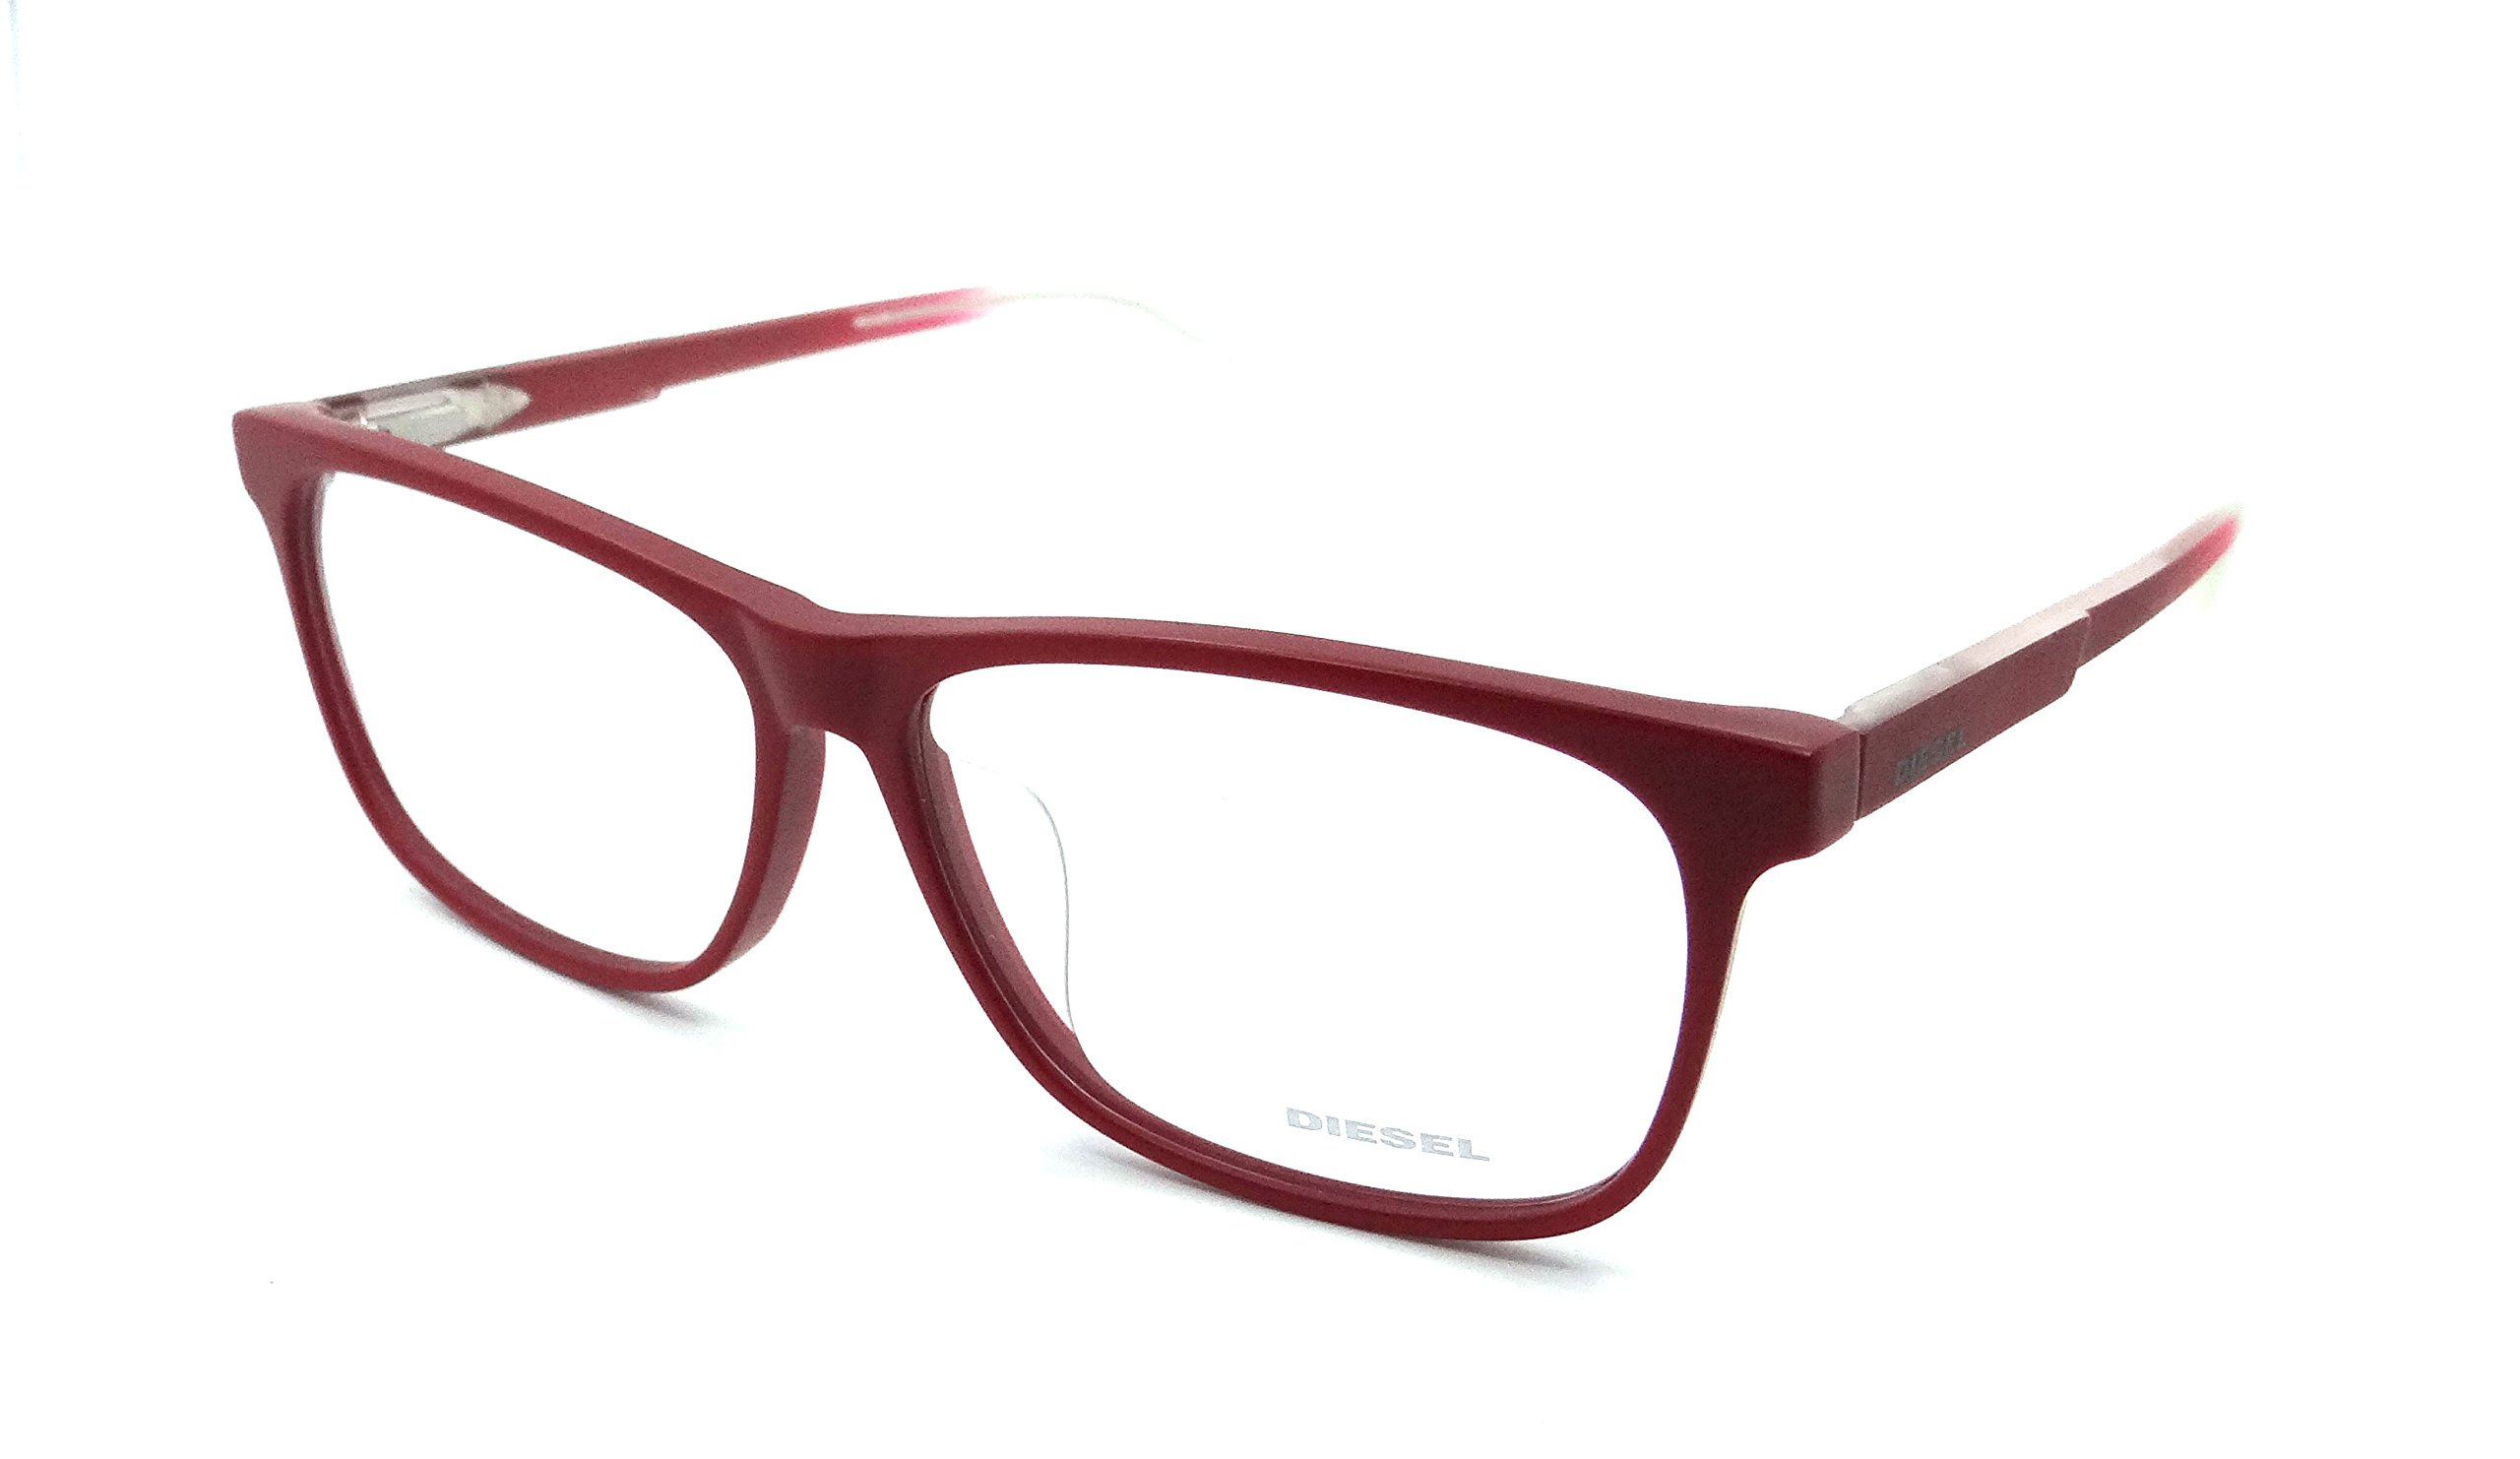 Diesel Rx Eyeglasses Frames DL5159-F 067 59-13-150 Matte Red Asian Fit